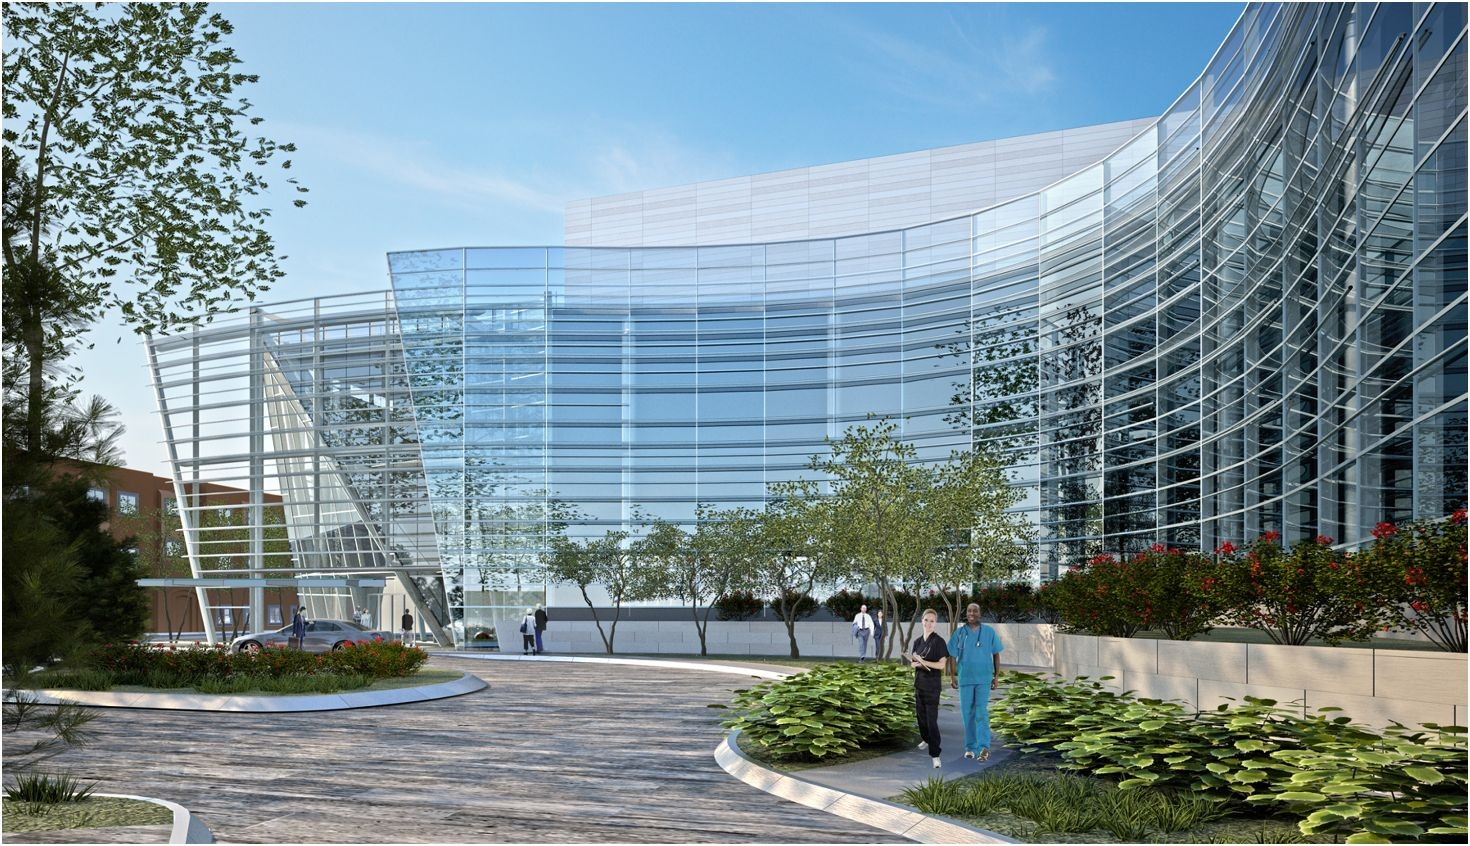 Gallery of Advocate Illinois Masonic Medical Center, Center for Advanced Care Proposal ...